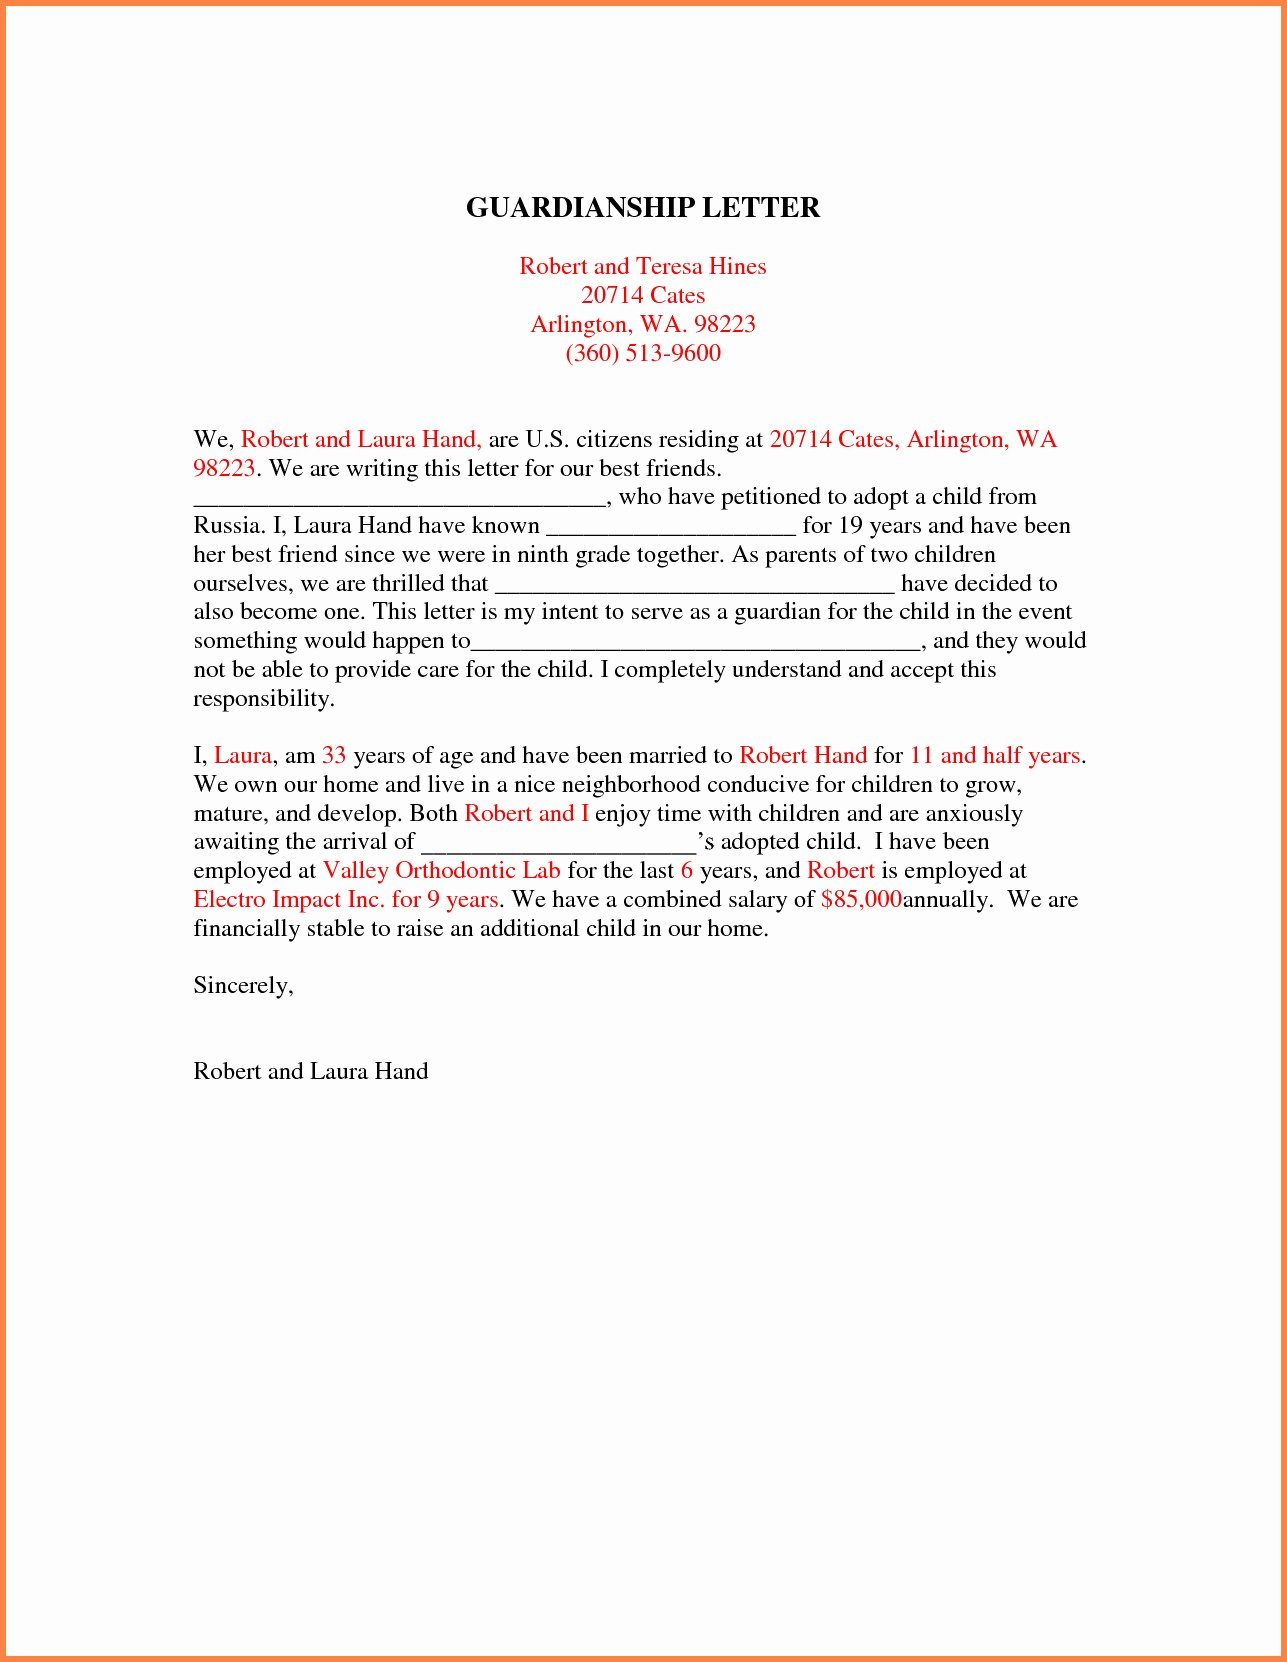 Permanent Guardianship Letter Template Awesome Template for Temporary Guardianship Letter Examples